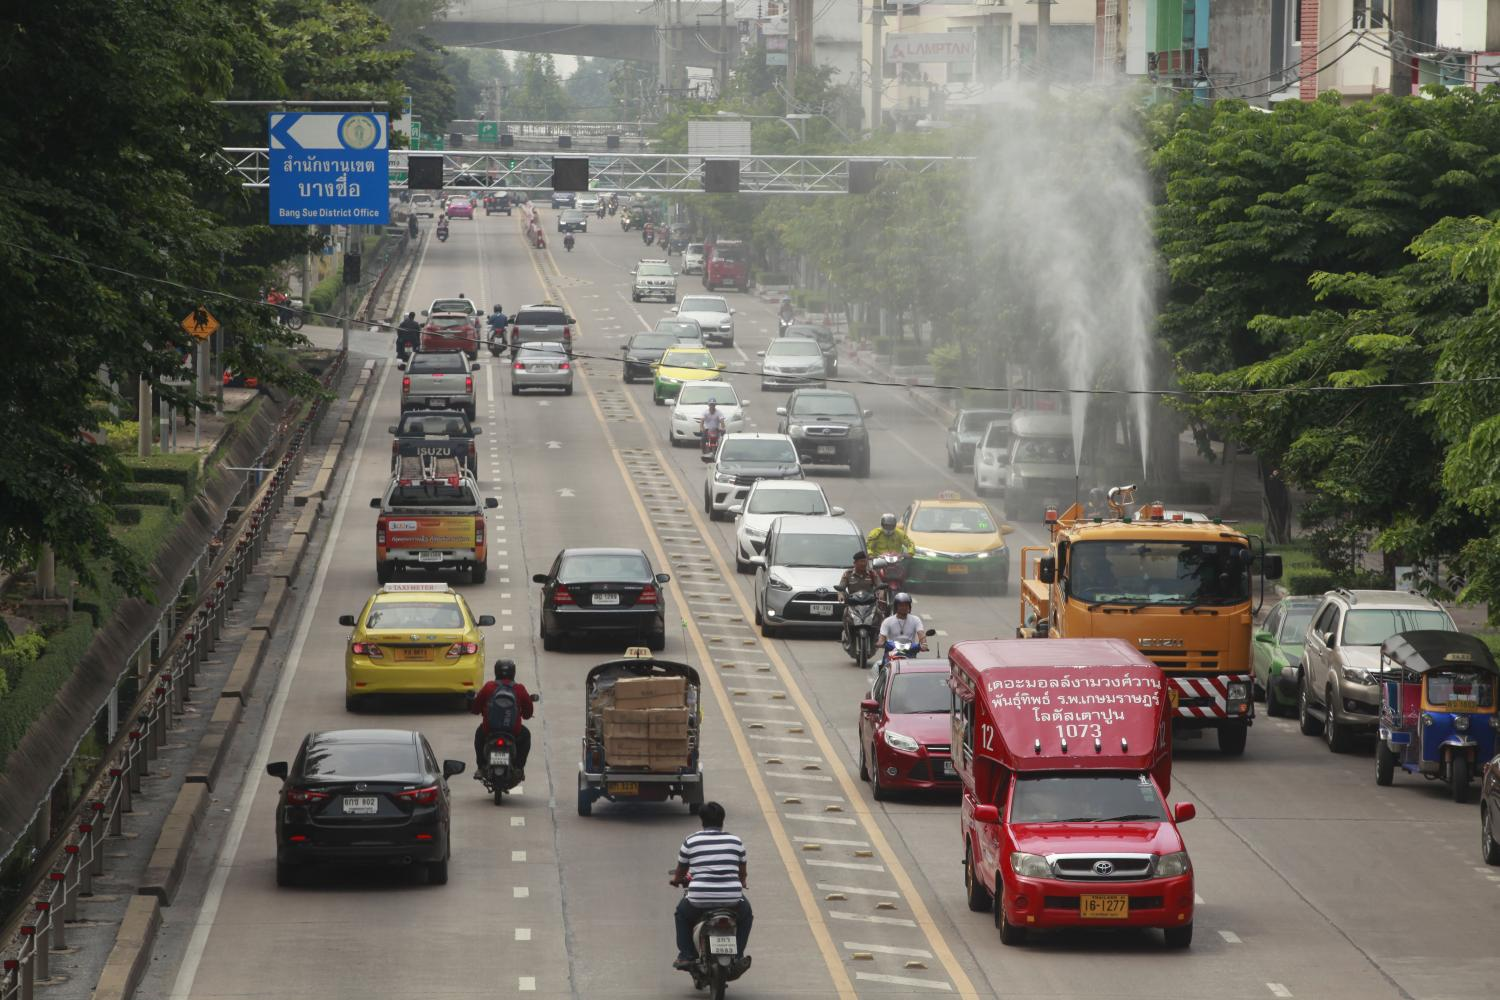 No more than 10% of old vehicles registered in Thailand will be voluntarily demolished, according to a source. Some 39.3 million vehicles were officially registered as of November. (Photo by Pornprom Satrabhaya)